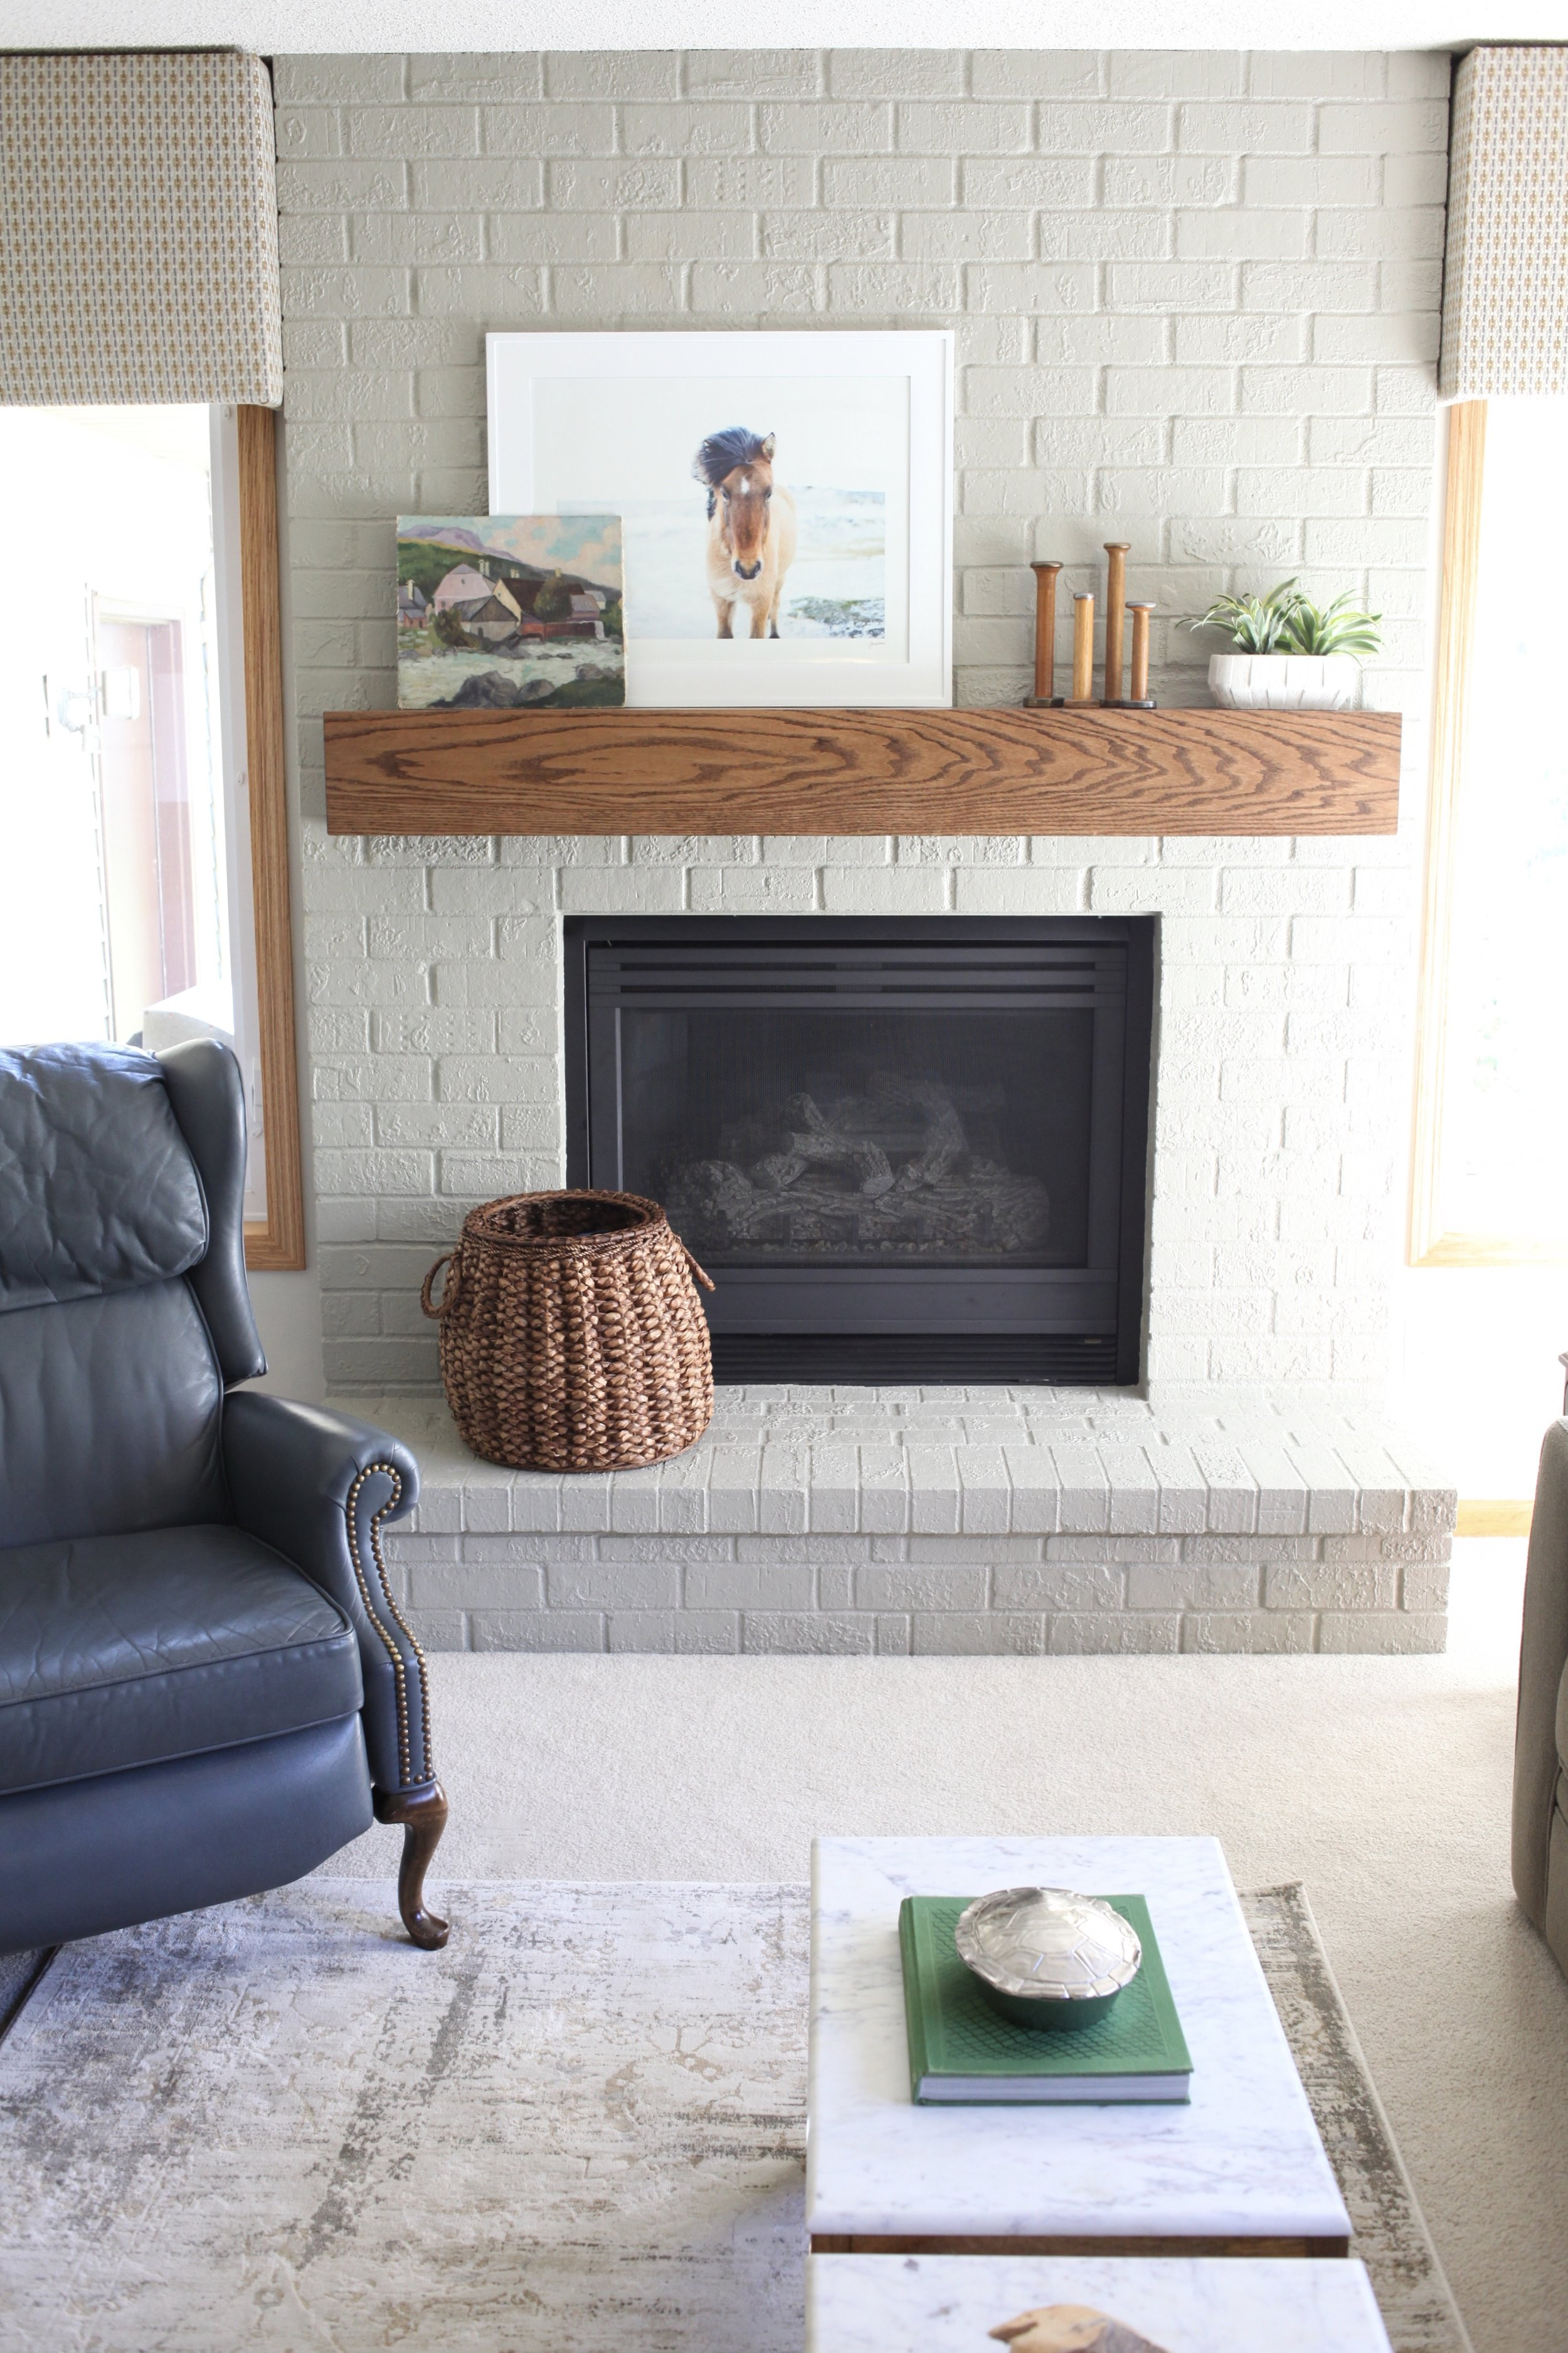 Modern fireplace with wood mantel, horse art, box valences, basket, blue leather chair, silver turtle box